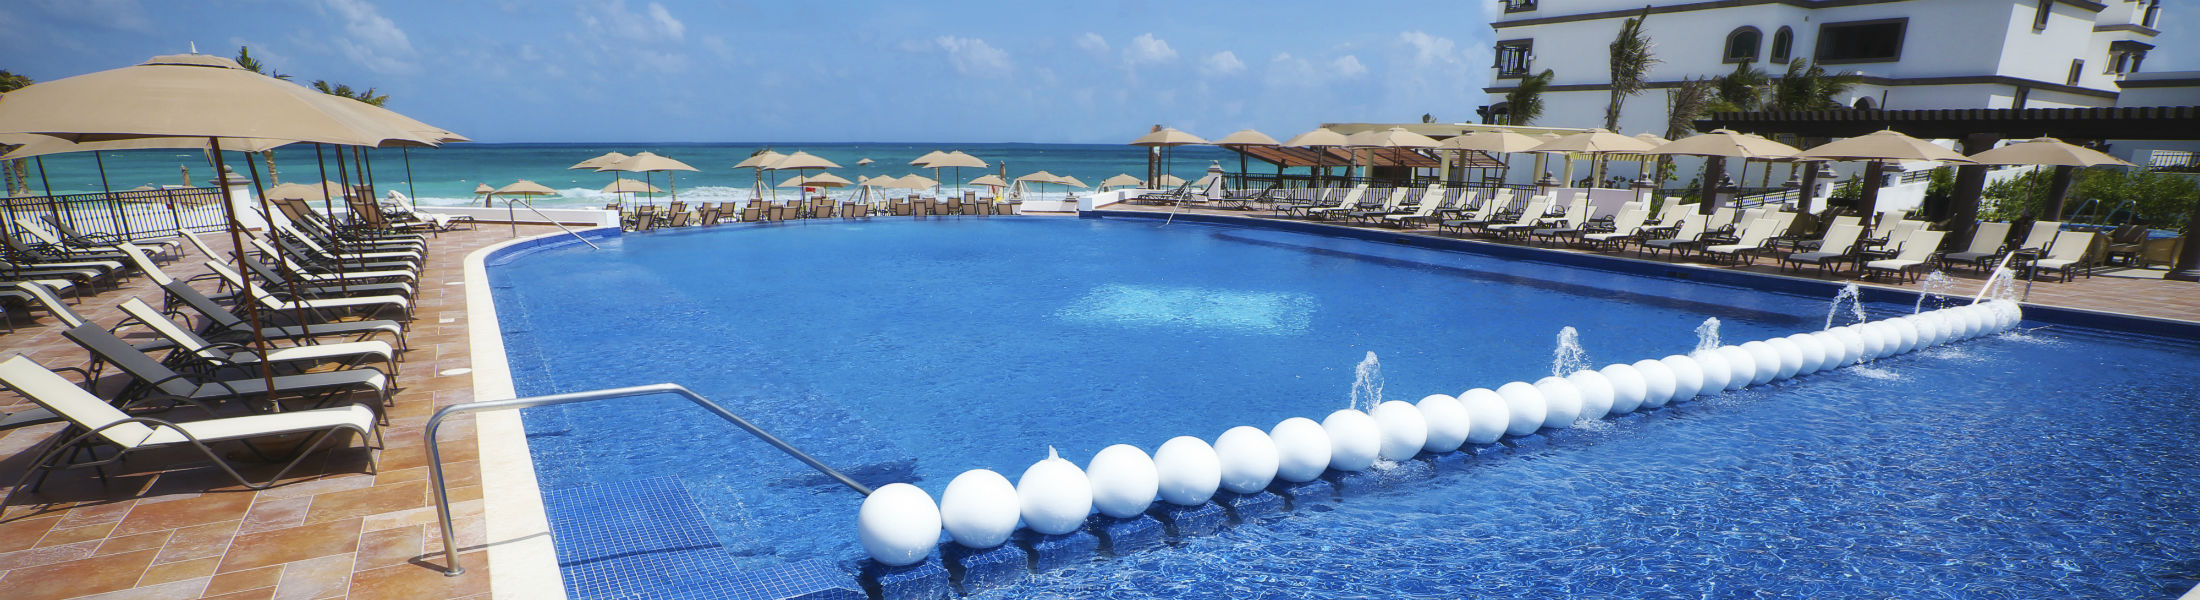 Grand Residences Riviera Cancun Main swimming pool